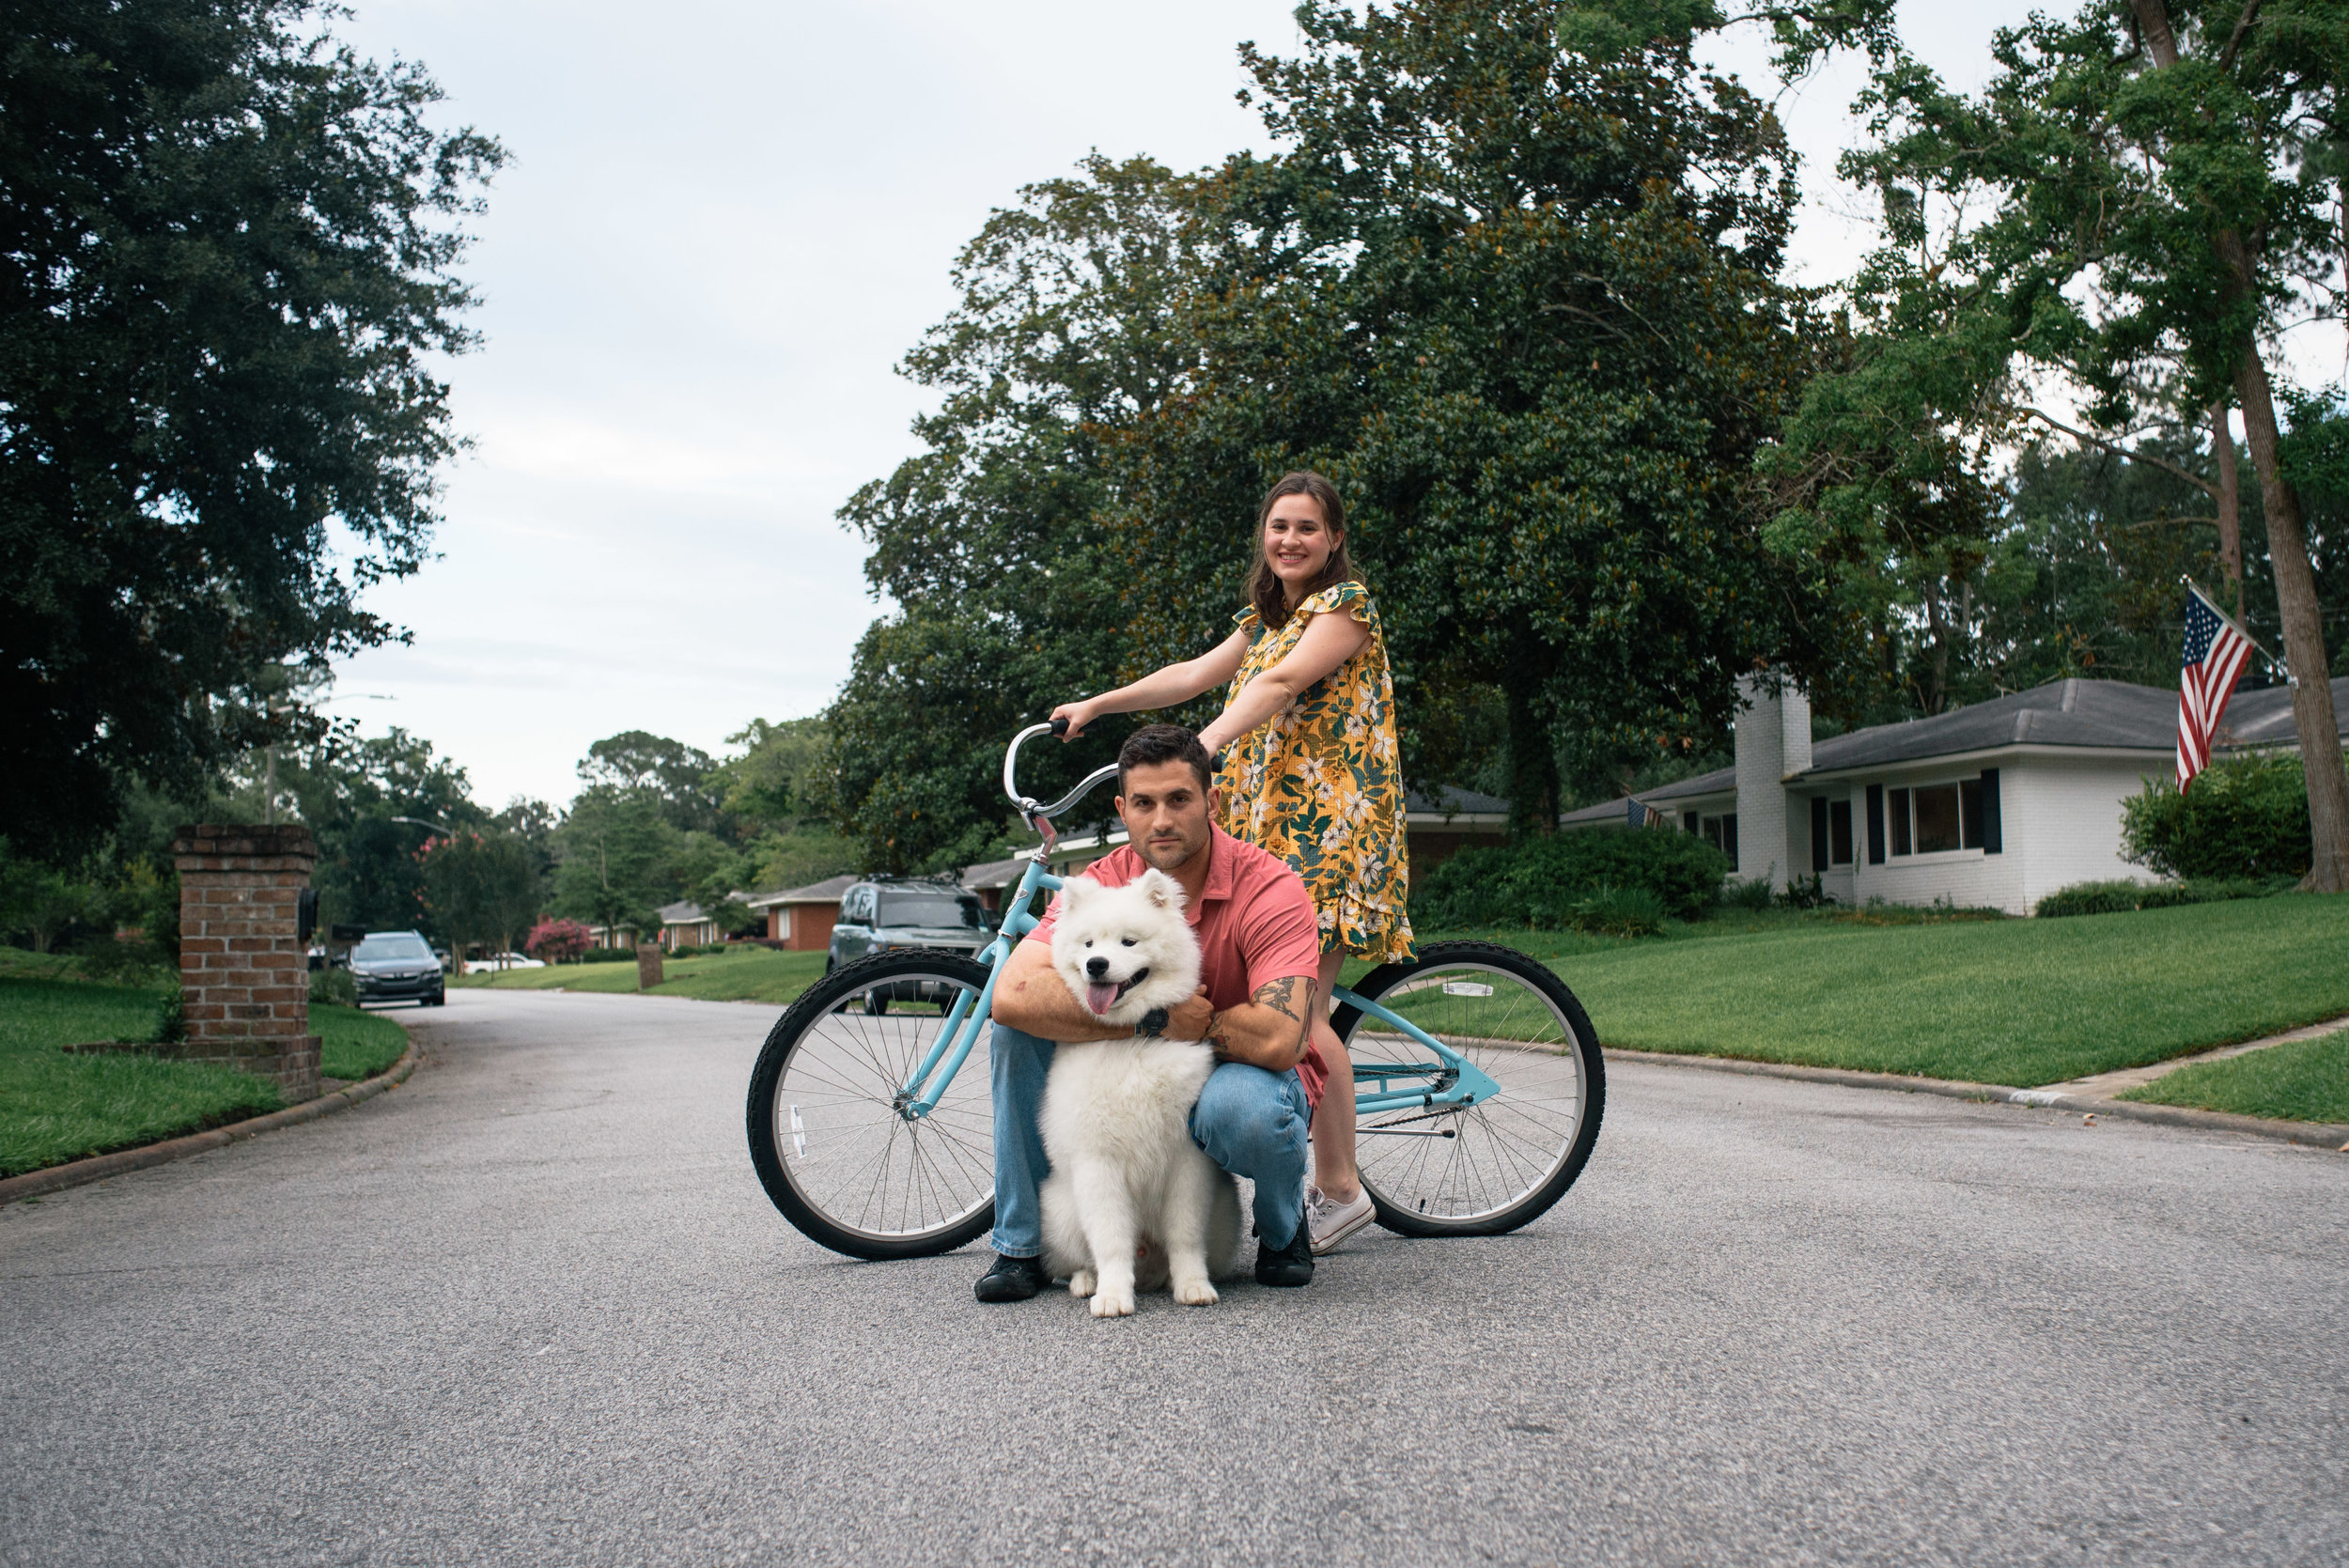 ellie-and-anthony-maternity-photos-june-2018 (72 of 189).jpg